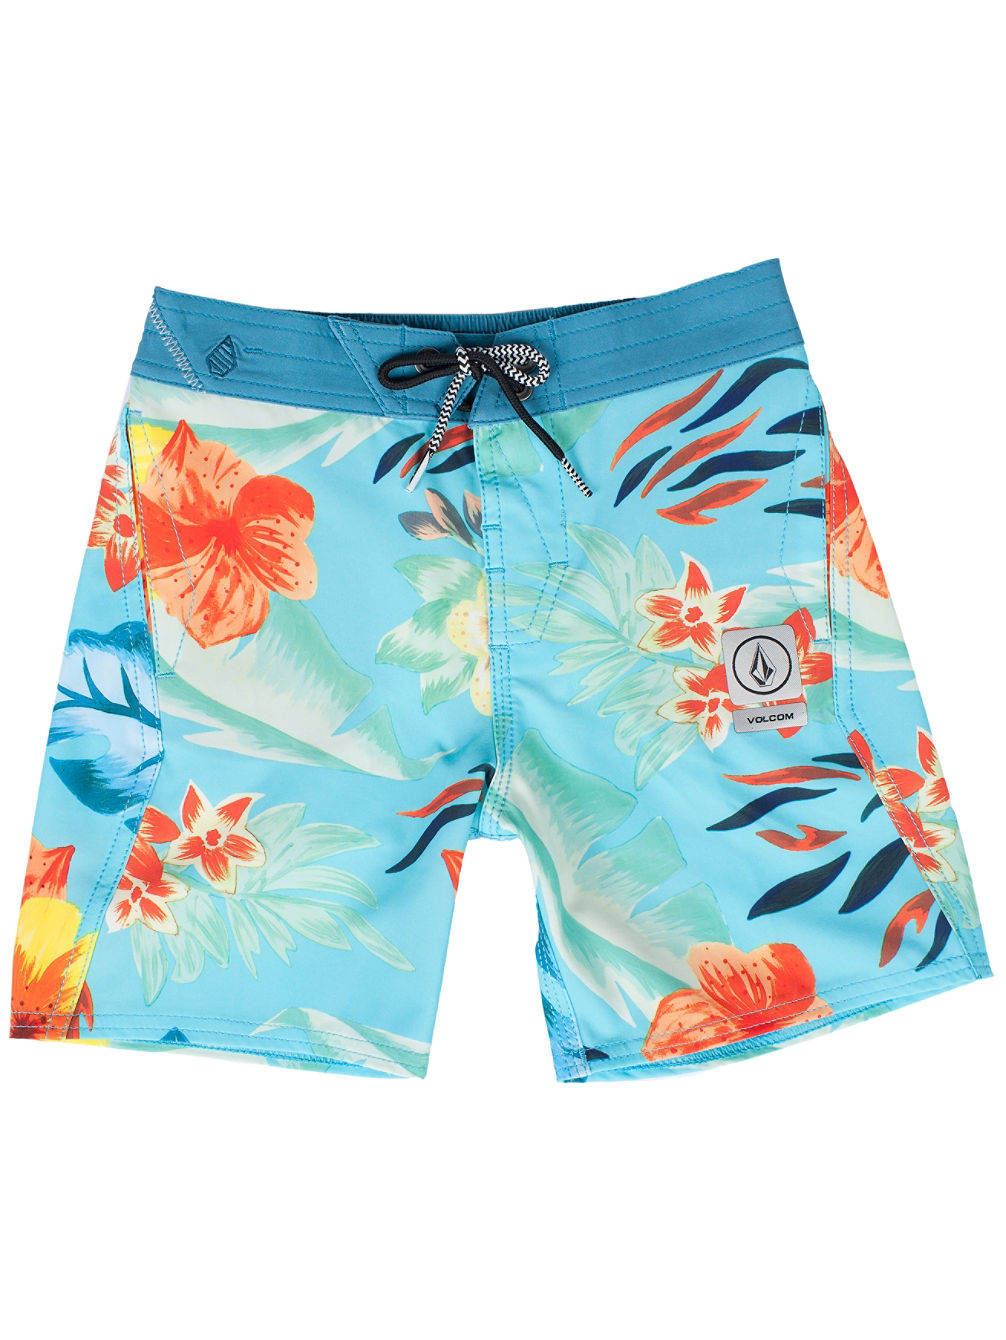 Party Pack Ew Safari Boardshorts Jungen